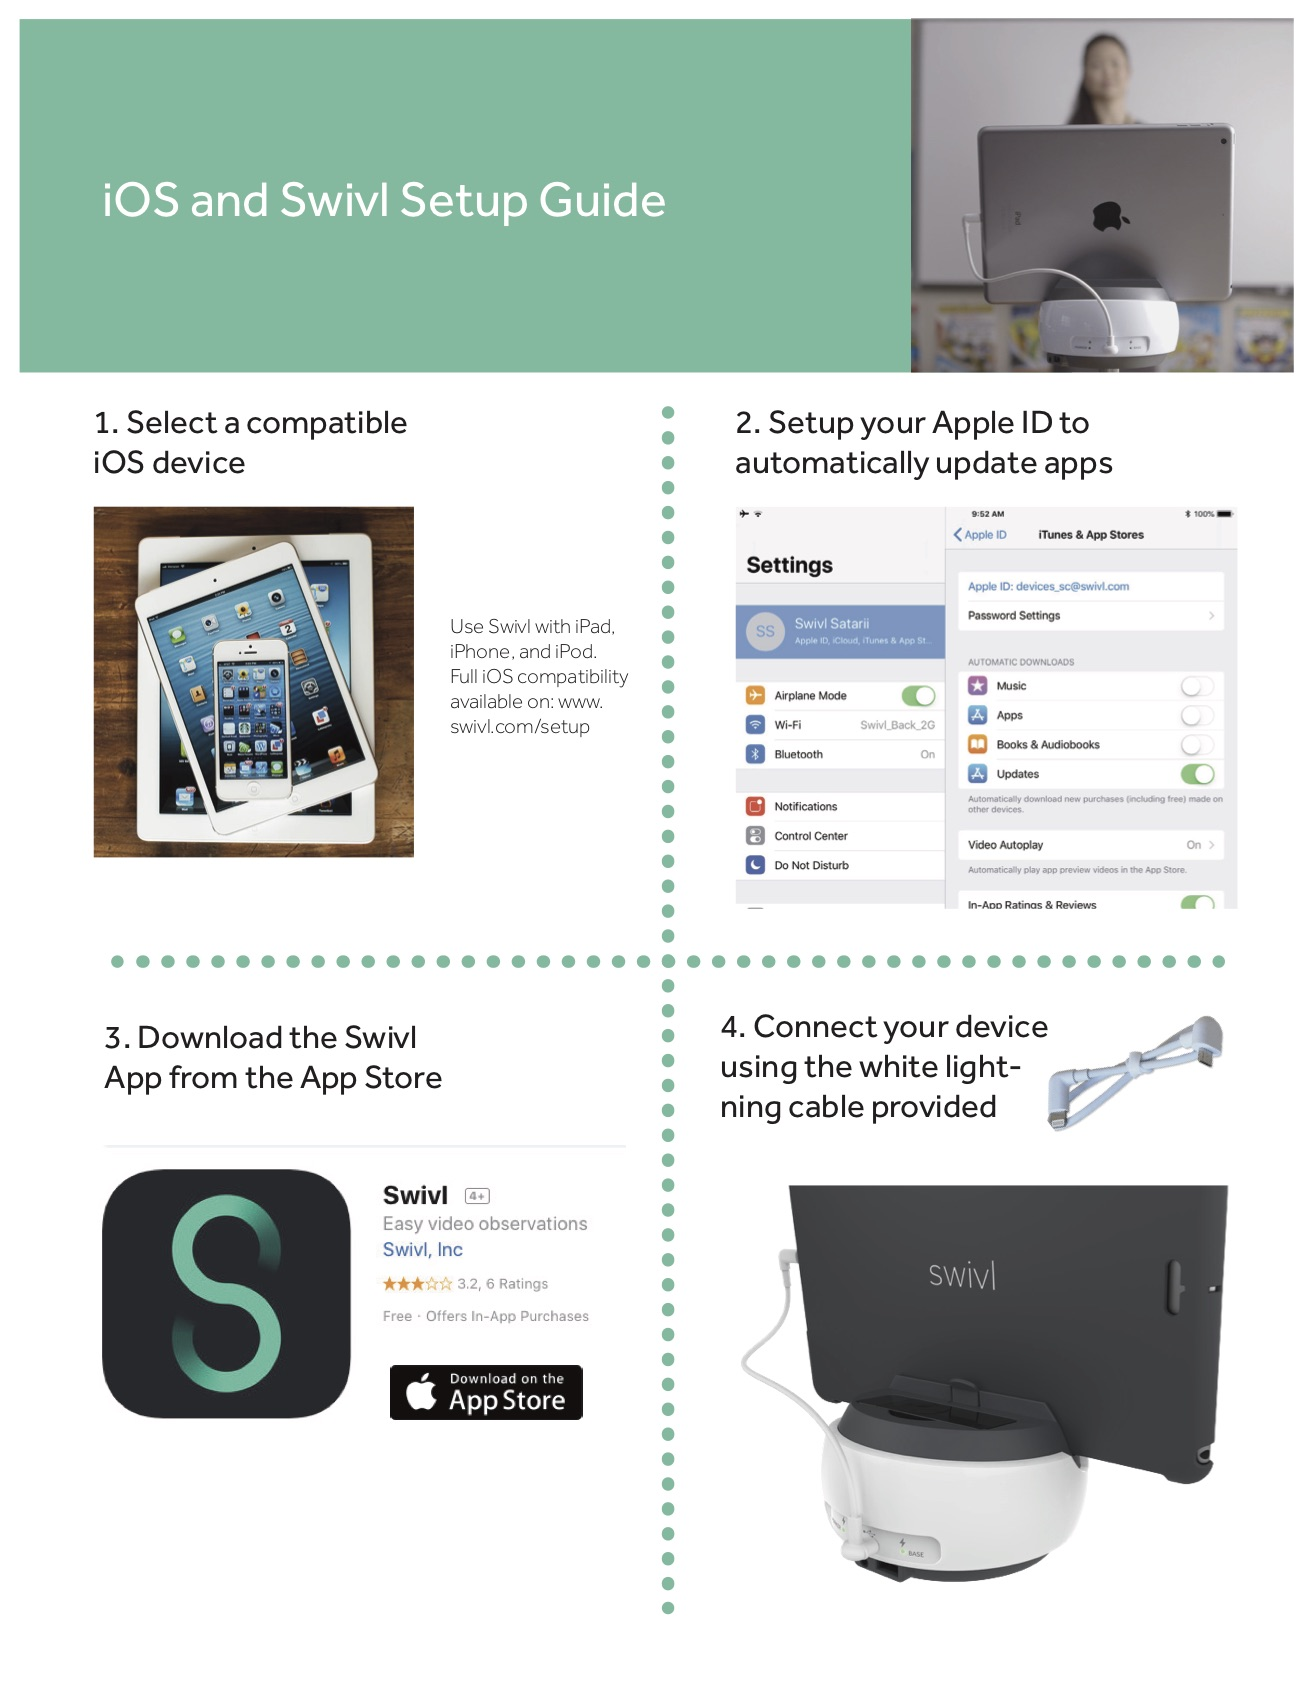 iOS_Swivl_Infographic_2018.jpg